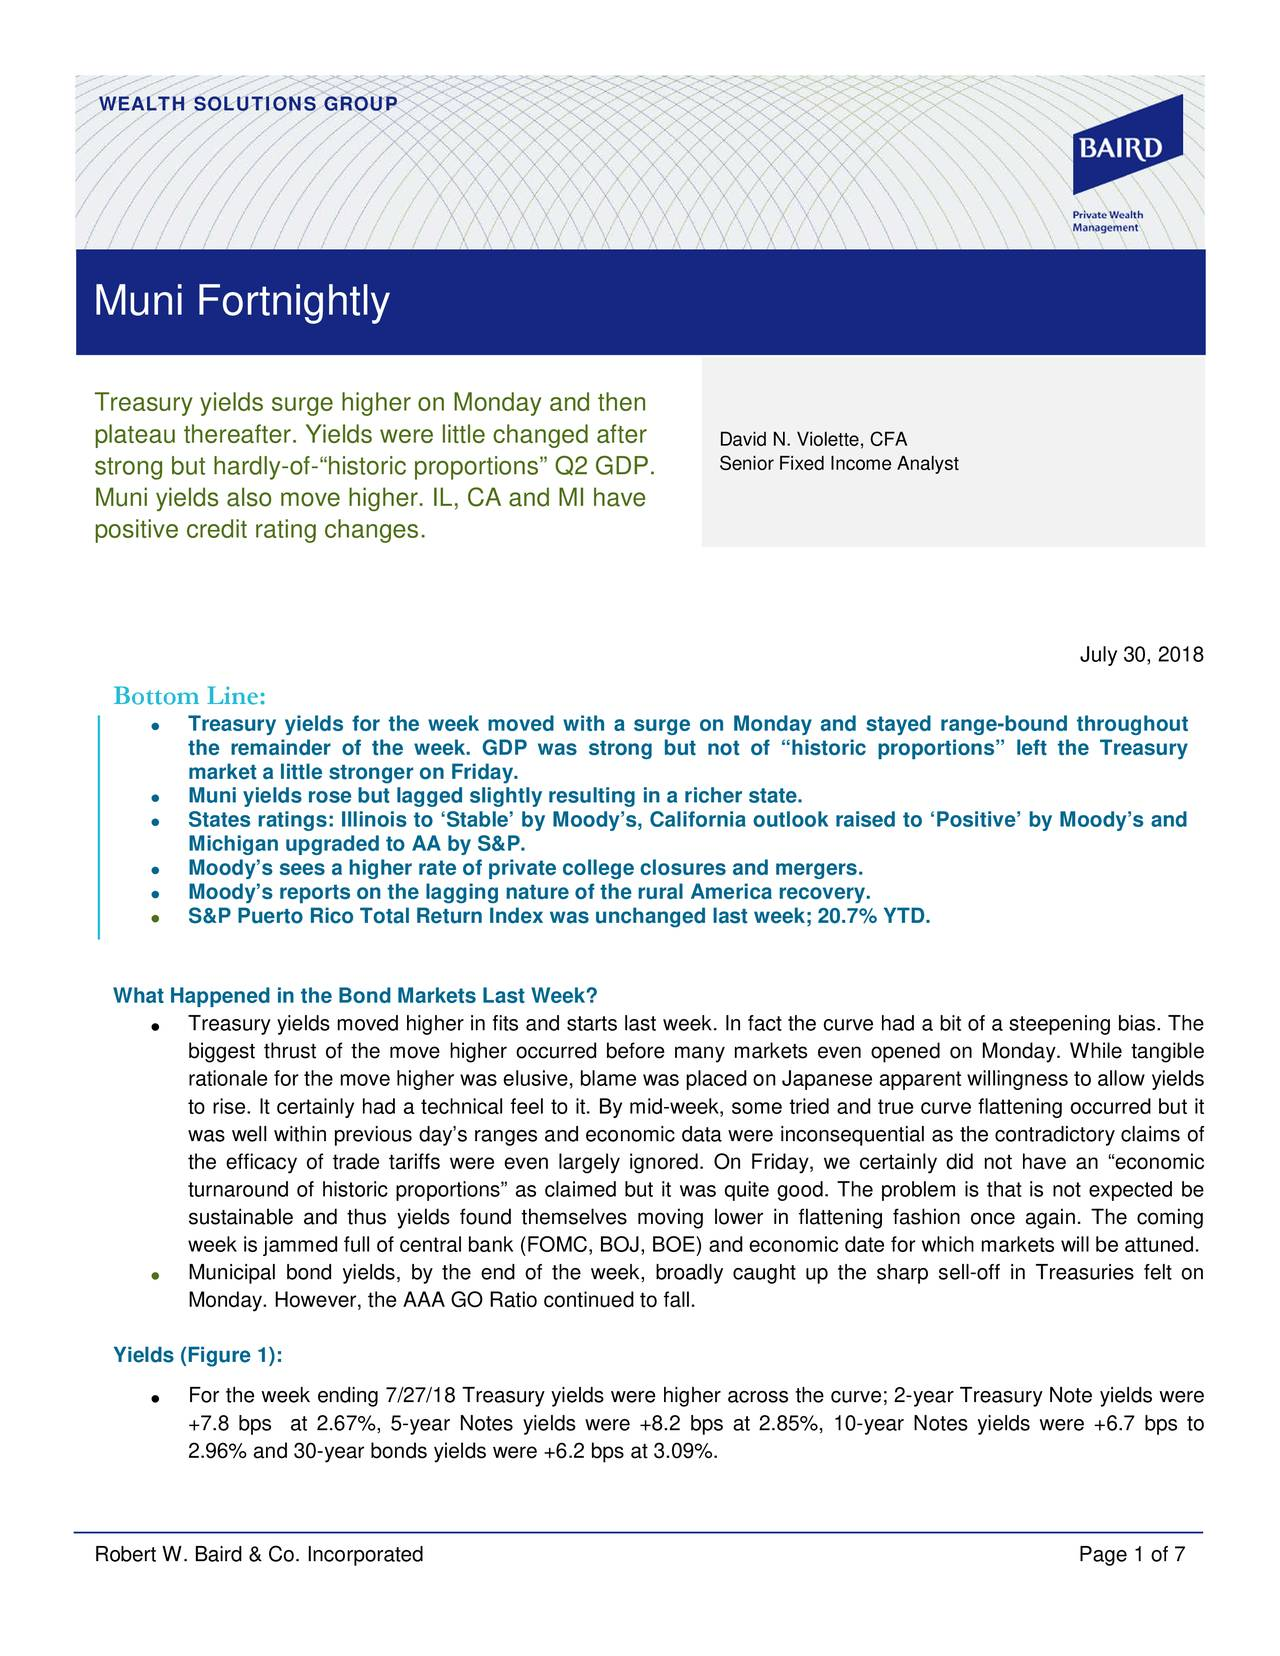 """Muni Fortnightly Treasury yields surge higher on Monday and then plateau thereafter. Yields were little changed after David N. Violette, CFA strong but hardly-of-""""historic proportions"""" Q2 GDP. Senior Fixed Income Analyst Muni yields also move higher. IL, CA and MI have positive credit rating changes. July 30, 2018 Bottom Line: • Treasury yields for the week moved with a surge on Monday and stayed range -bound throughout the remainder of the week. GDP was strong but not of """"historic proportions"""" left the Treasury market a little stronger on Friday. • Muni yields rose but lagged slightly resulting in a richer state. • States ratings: Illinois to 'Stable' by Moody's, Cali fornia outlook raised to 'Positive' by Moody's and Michigan upgraded to AA by S&P. • Moody's sees a higher rate of private college closures and mergers. • Moody's reports on the lagging nature of the rural America recovery. • S&P Puerto Rico Total Return Index was unchanged last week; 20.7% YTD. What Happened in the Bond Markets Last Week? • Treasury yields moved higher in fits and starts last week. In fact the curve had a bit of a steepening bias. The biggest thrust of the move higher occurred before many markets even opened on Monday. While tangible rationale for the move higher was elusive, blame was placed on Japanese apparent willingness to allowyields to rise. It certainly had a technical feel to it. By mid- week, some tried and true curve flattening occurred but it was well within previous day's ranges and economic data were inconsequential as the contradictory claims of the efficacy of trade tariffs were even largely ignored. On Friday, we certainly did not have an """"economic turnaround of historic proportions"""" as claimed but it was quite good. The problem is that is not expected be sustainable and thus yields found themselves moving lower in flattening fashion once again. The coming week is jammed full of central bank (FOMC, BOJ, BOE) and economic date for which markets will be attuned. • Muni"""